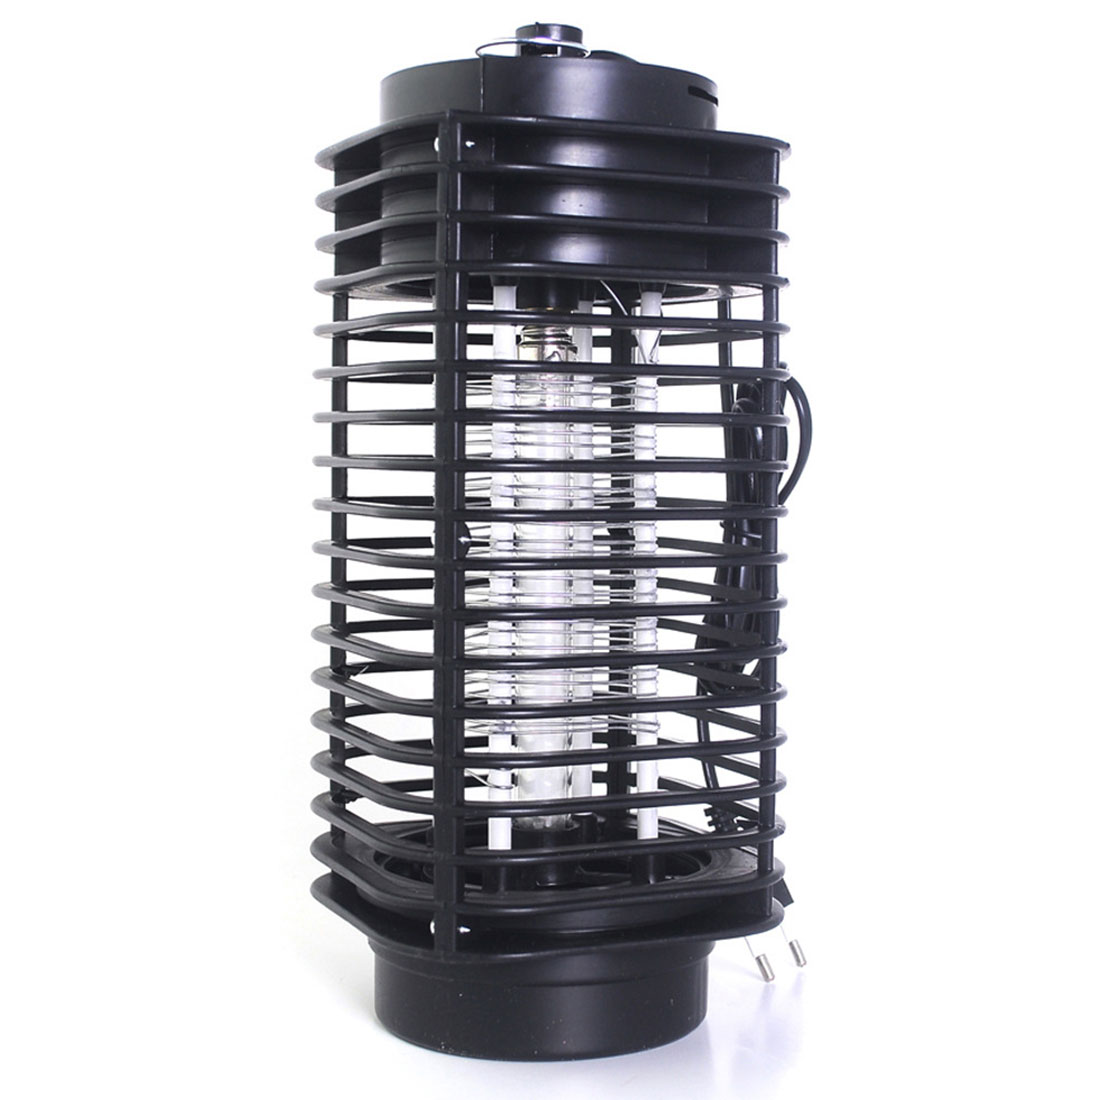 High-quality Photocatalyst Mosquito-killing 1pc Electronics Mosquito Killer Trap Moth Fly Wasp Led Night Lamp Zapper EU US Plug